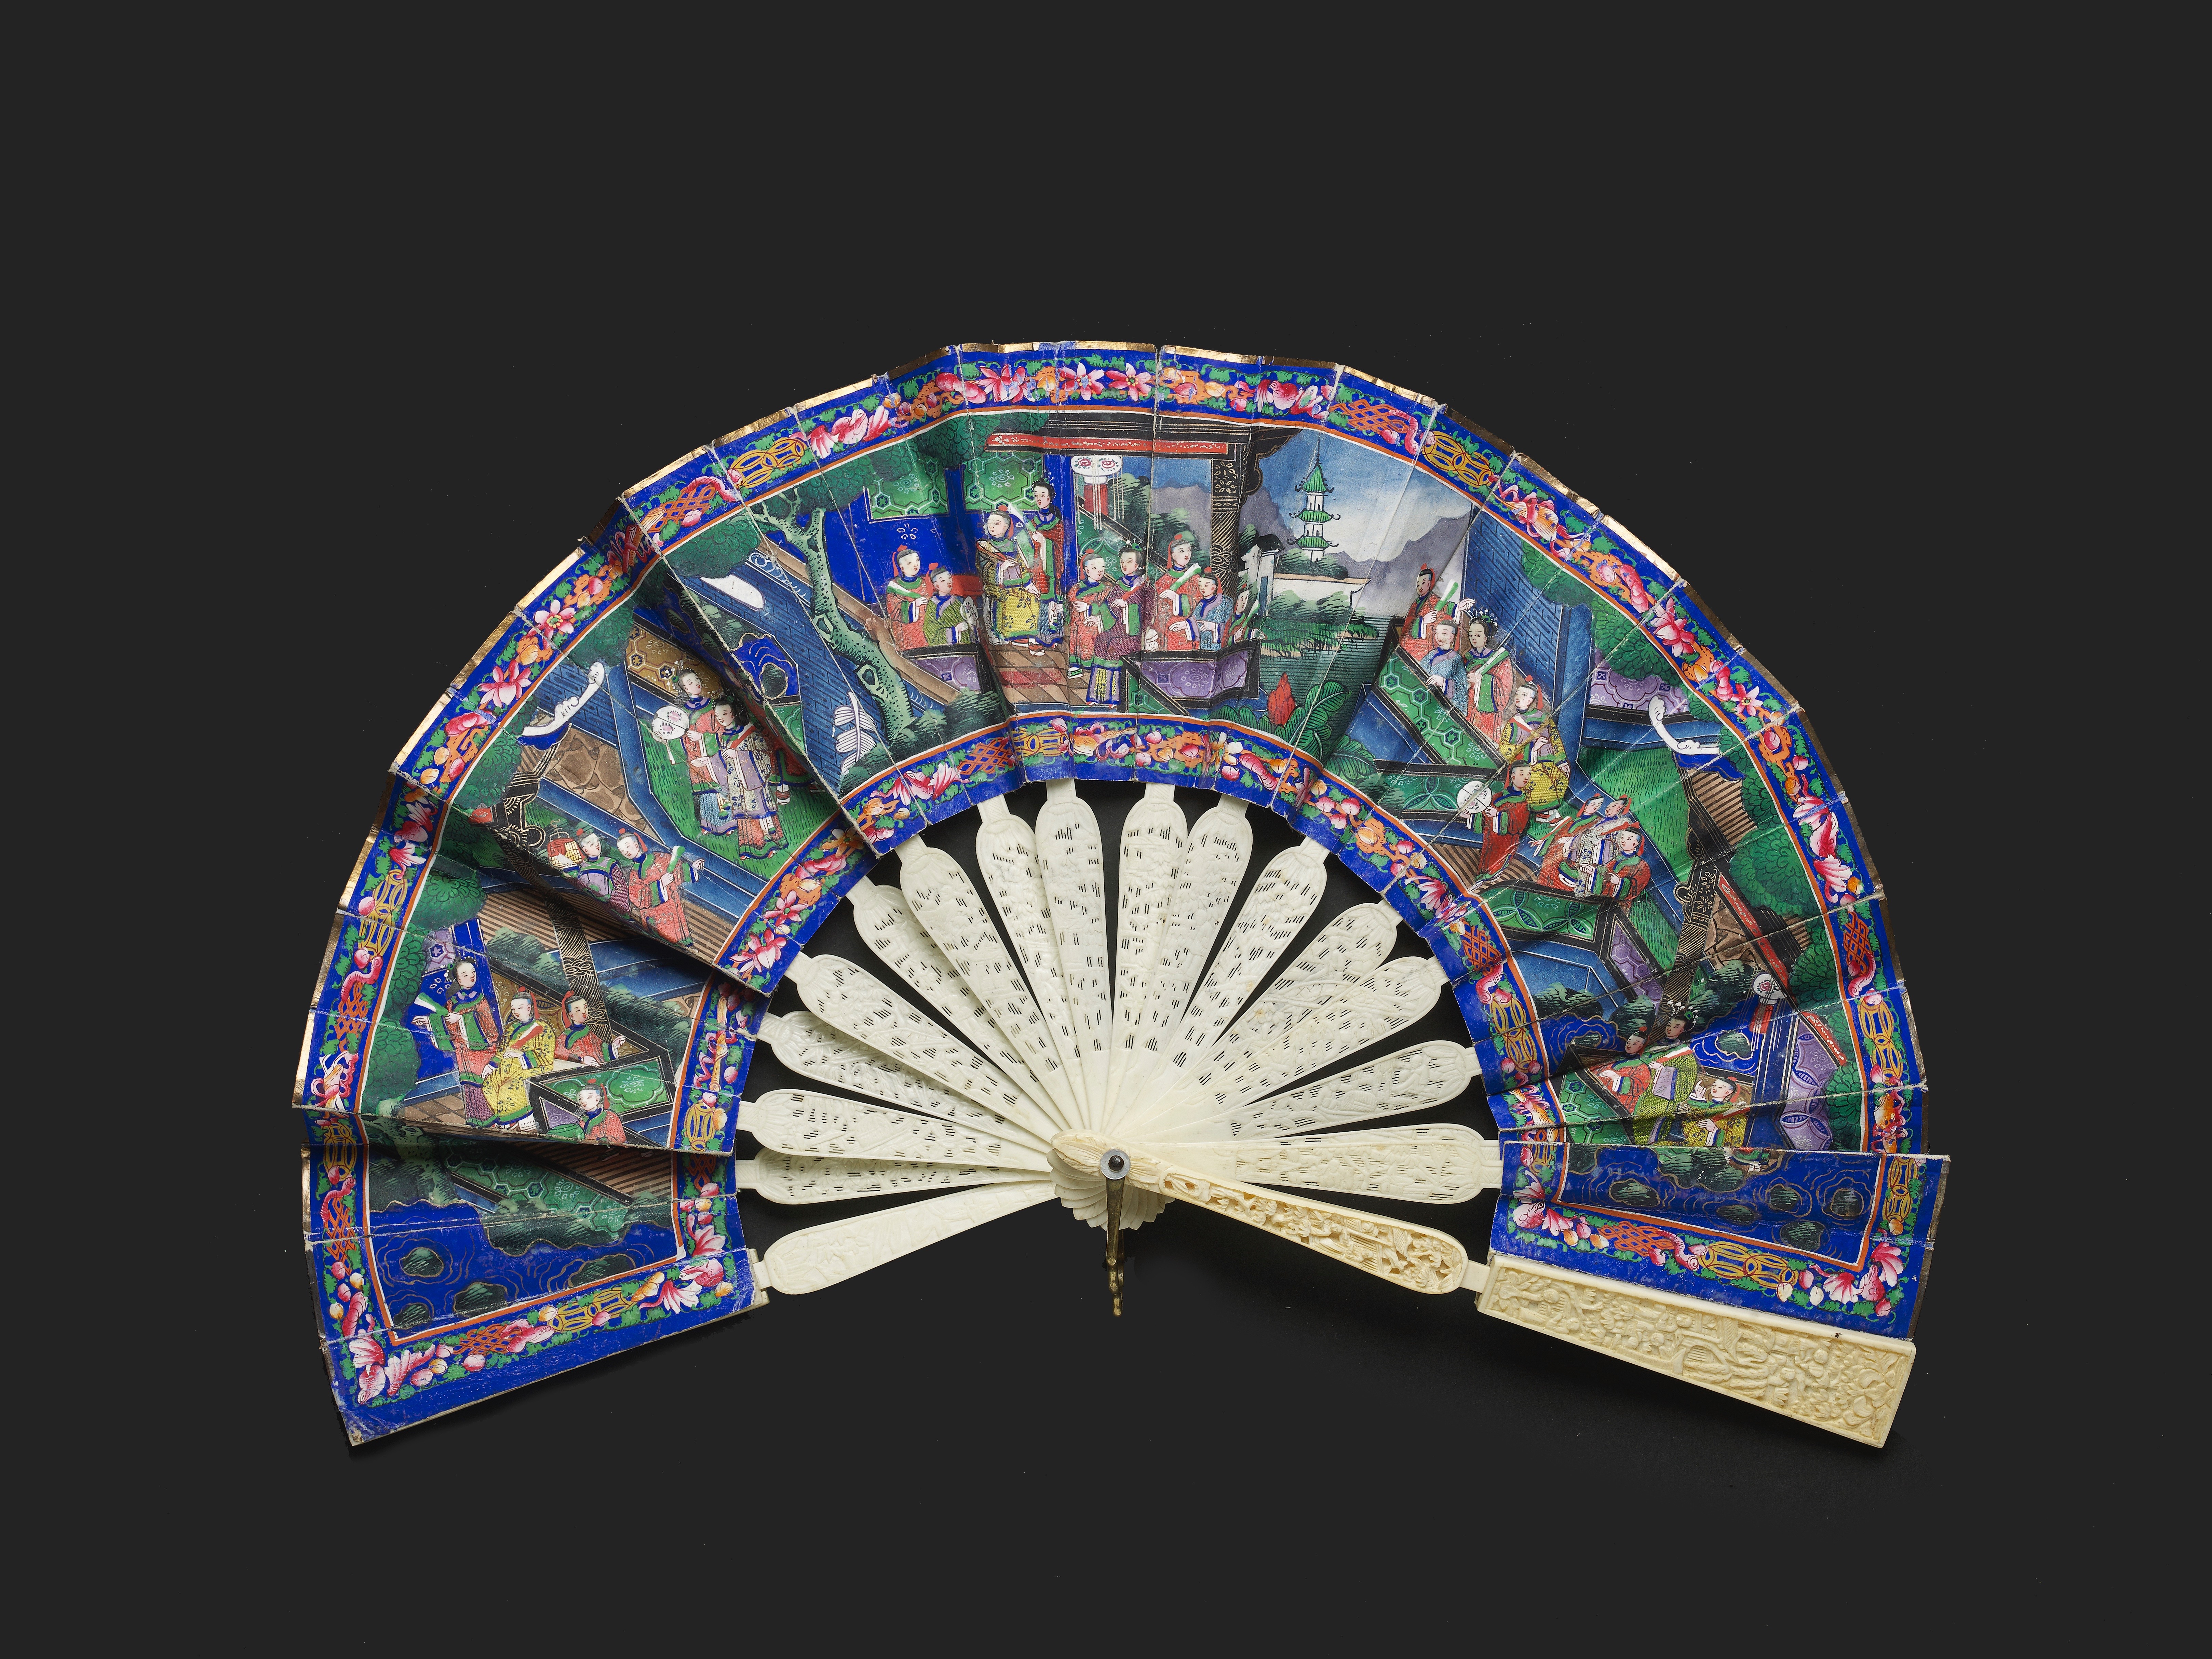 Lot 17 - A CHINESE EXPORT TELESCOPIC MANDARIN IVORY FAN, QING DYNASTY, DAOGUANG PERIOD, CIRCA 1840